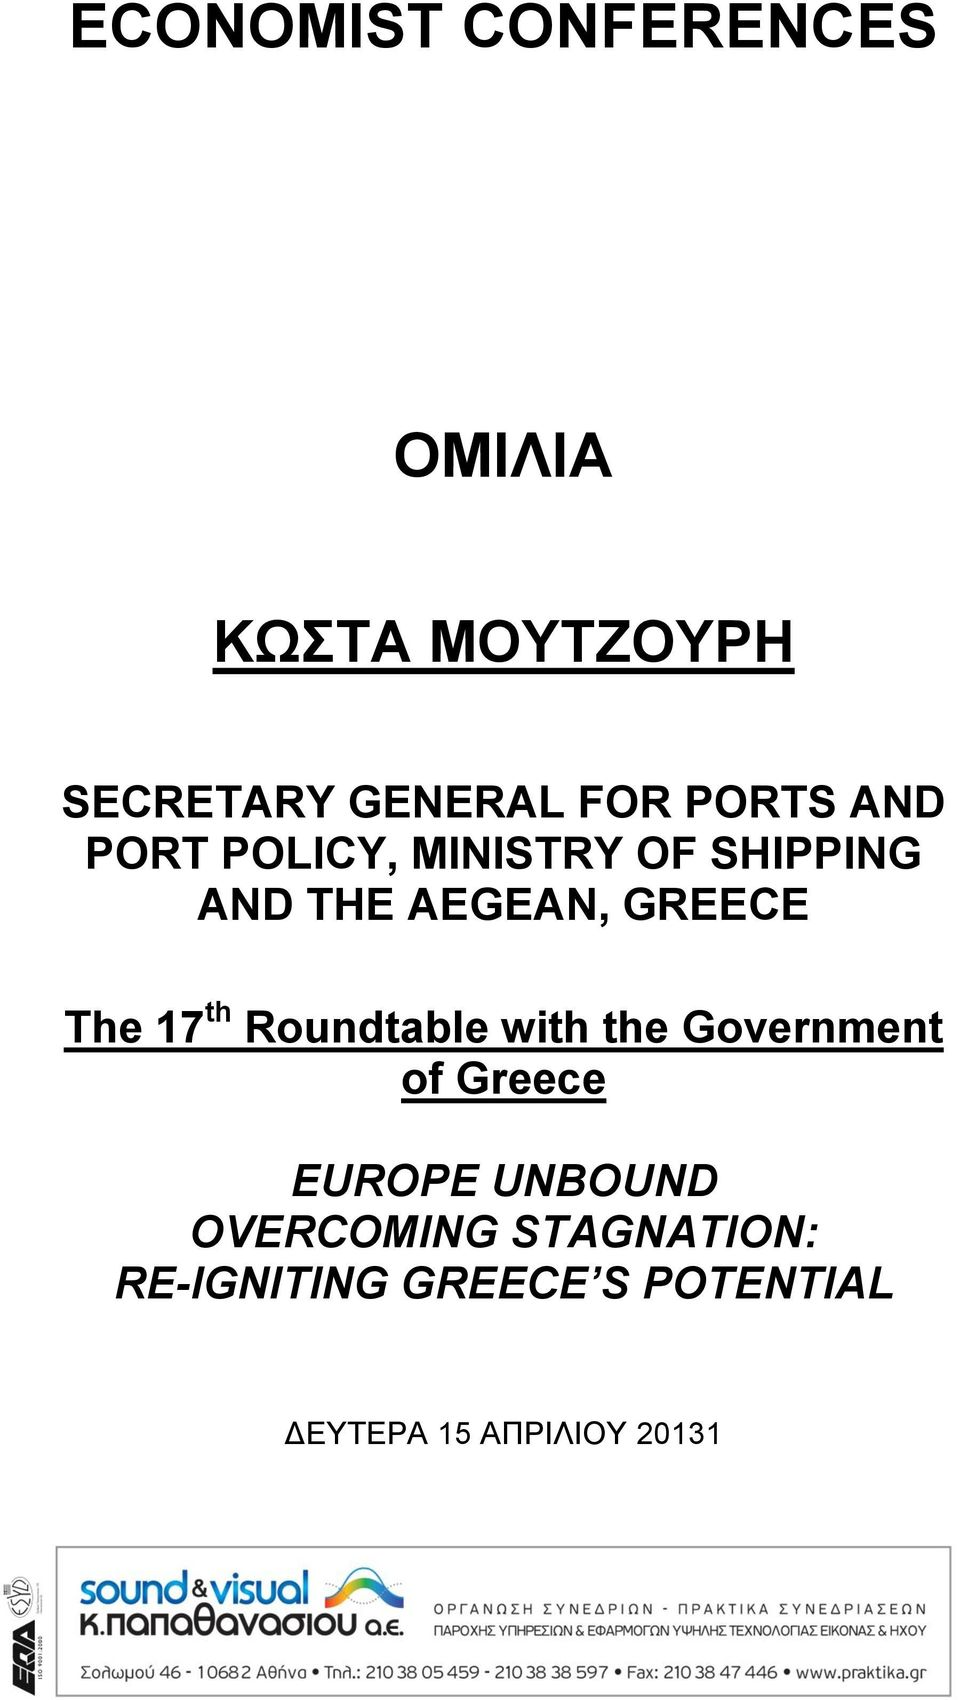 The 17 th Roundtable with the Government of Greece EUROPE UNBOUND